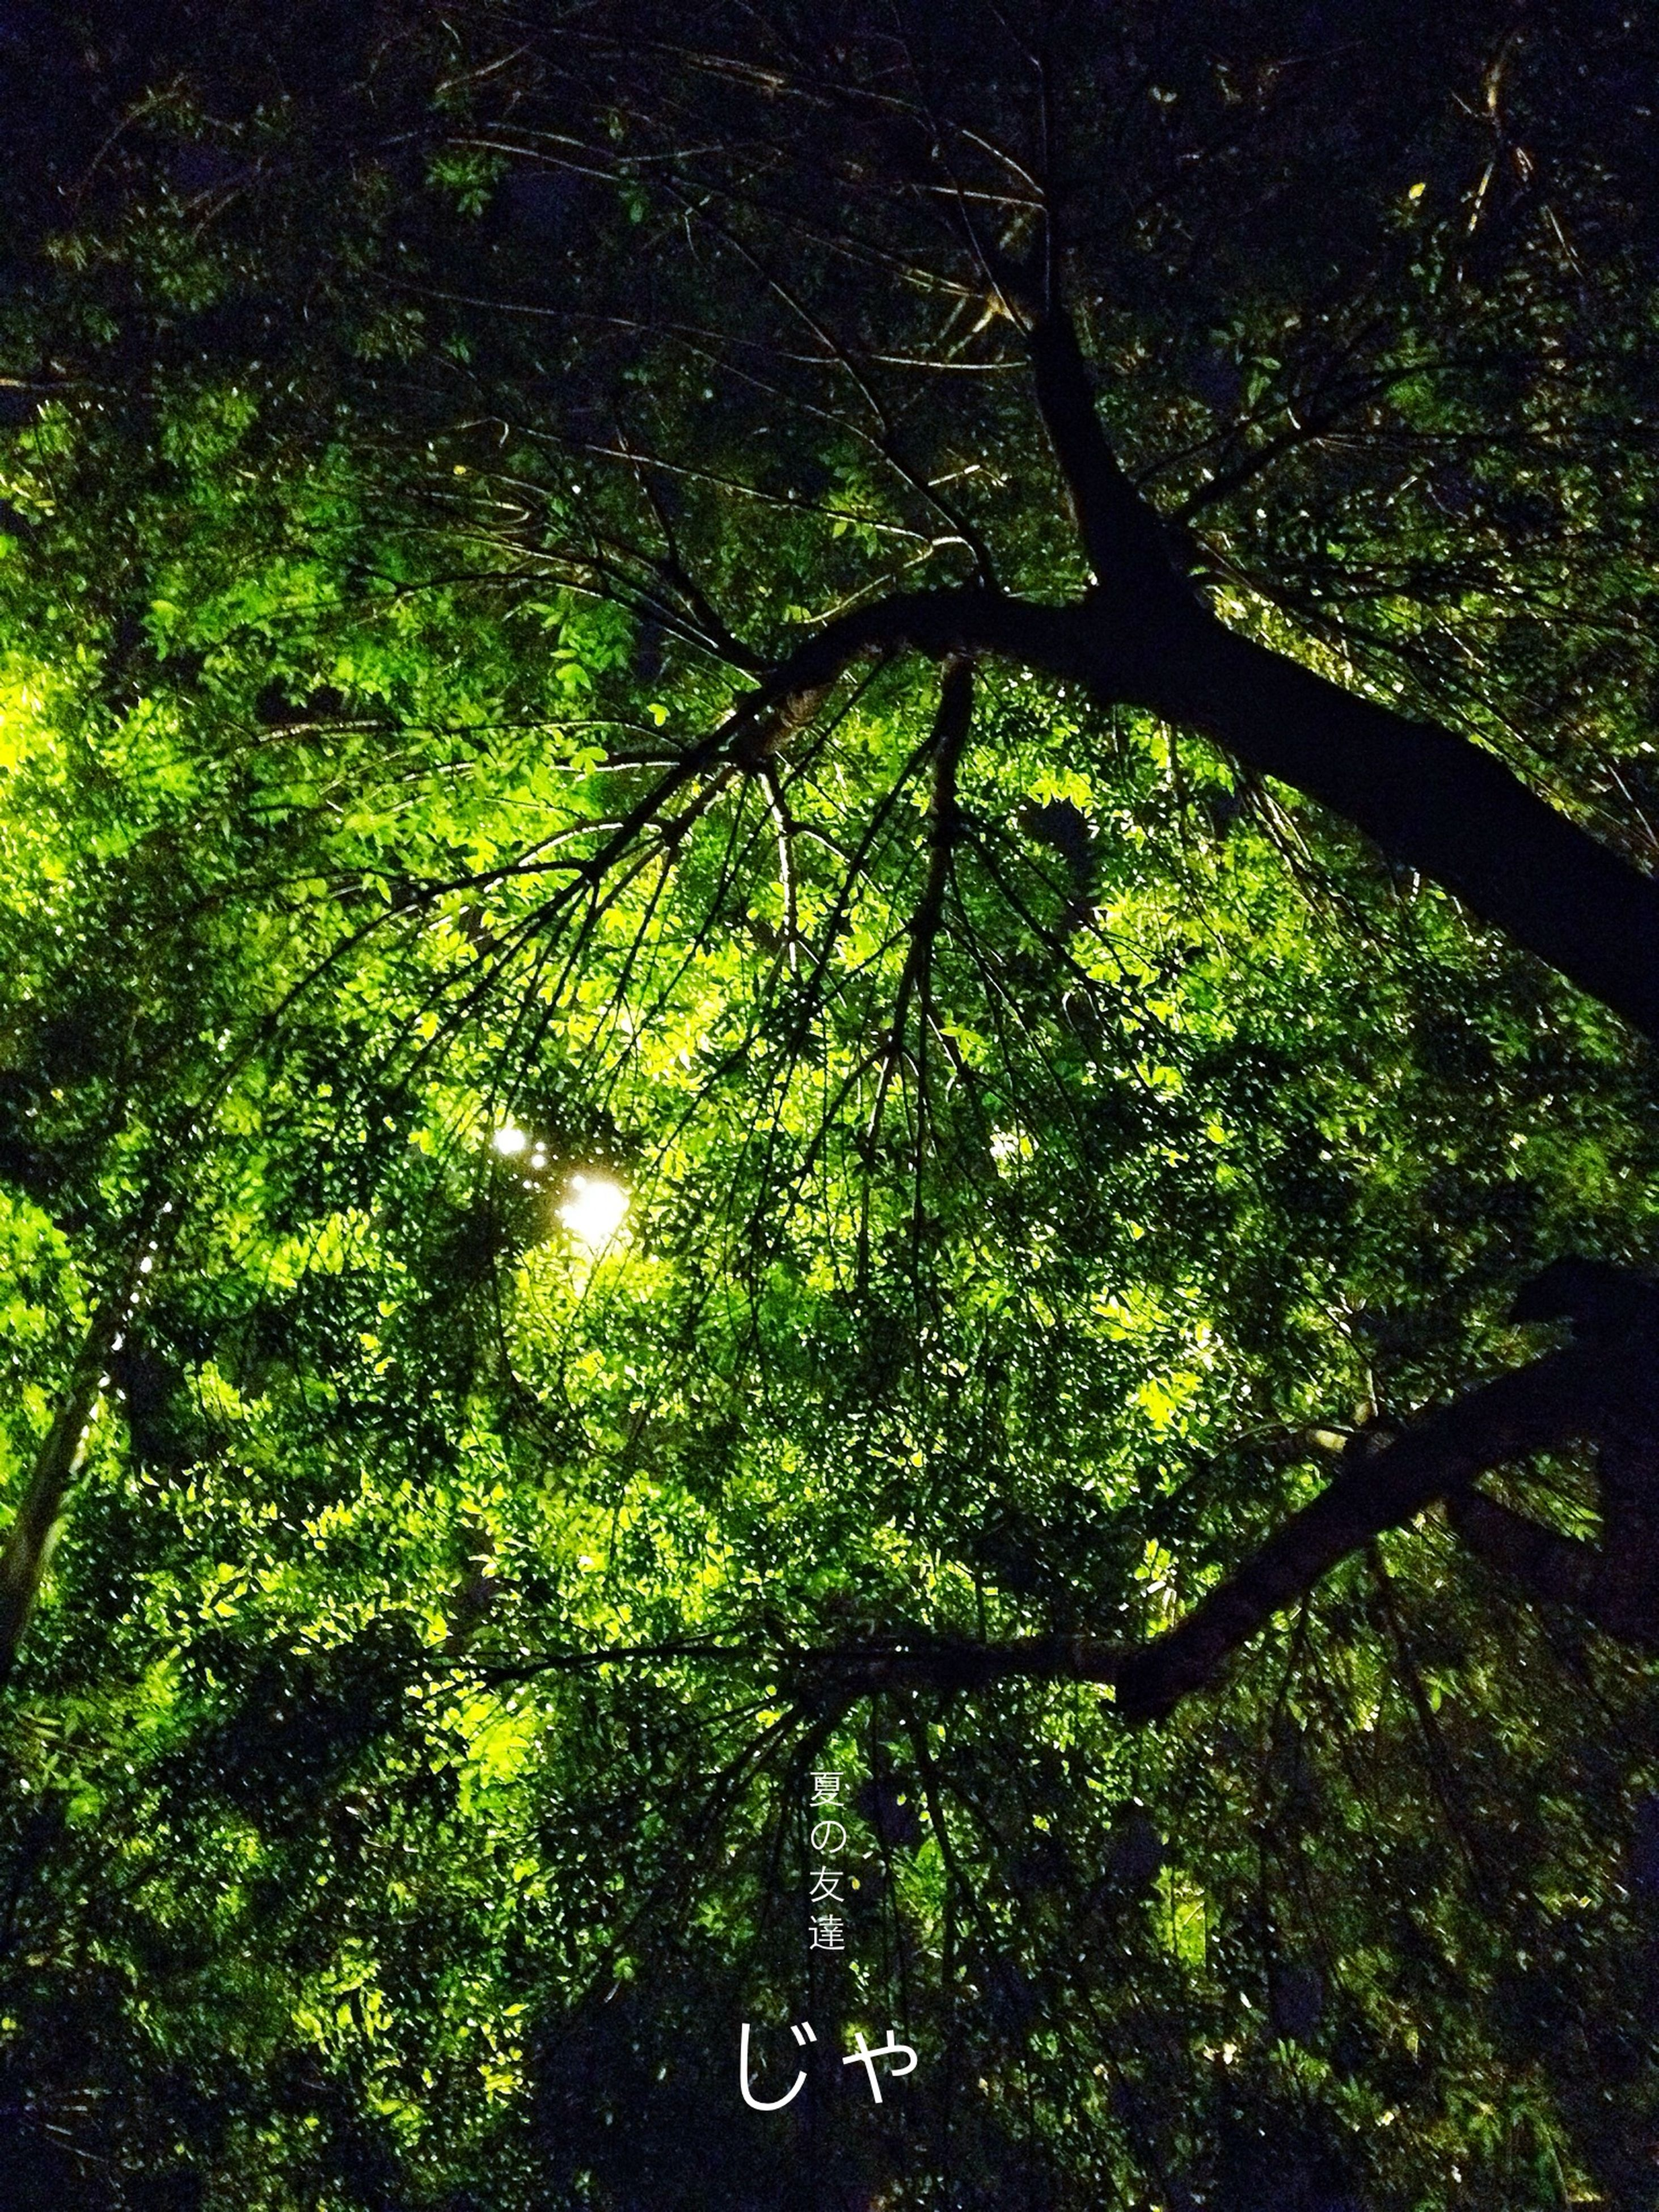 tree, growth, low angle view, branch, green color, sunlight, tranquility, nature, leaf, tree trunk, forest, night, beauty in nature, outdoors, lush foliage, no people, shadow, tranquil scene, lens flare